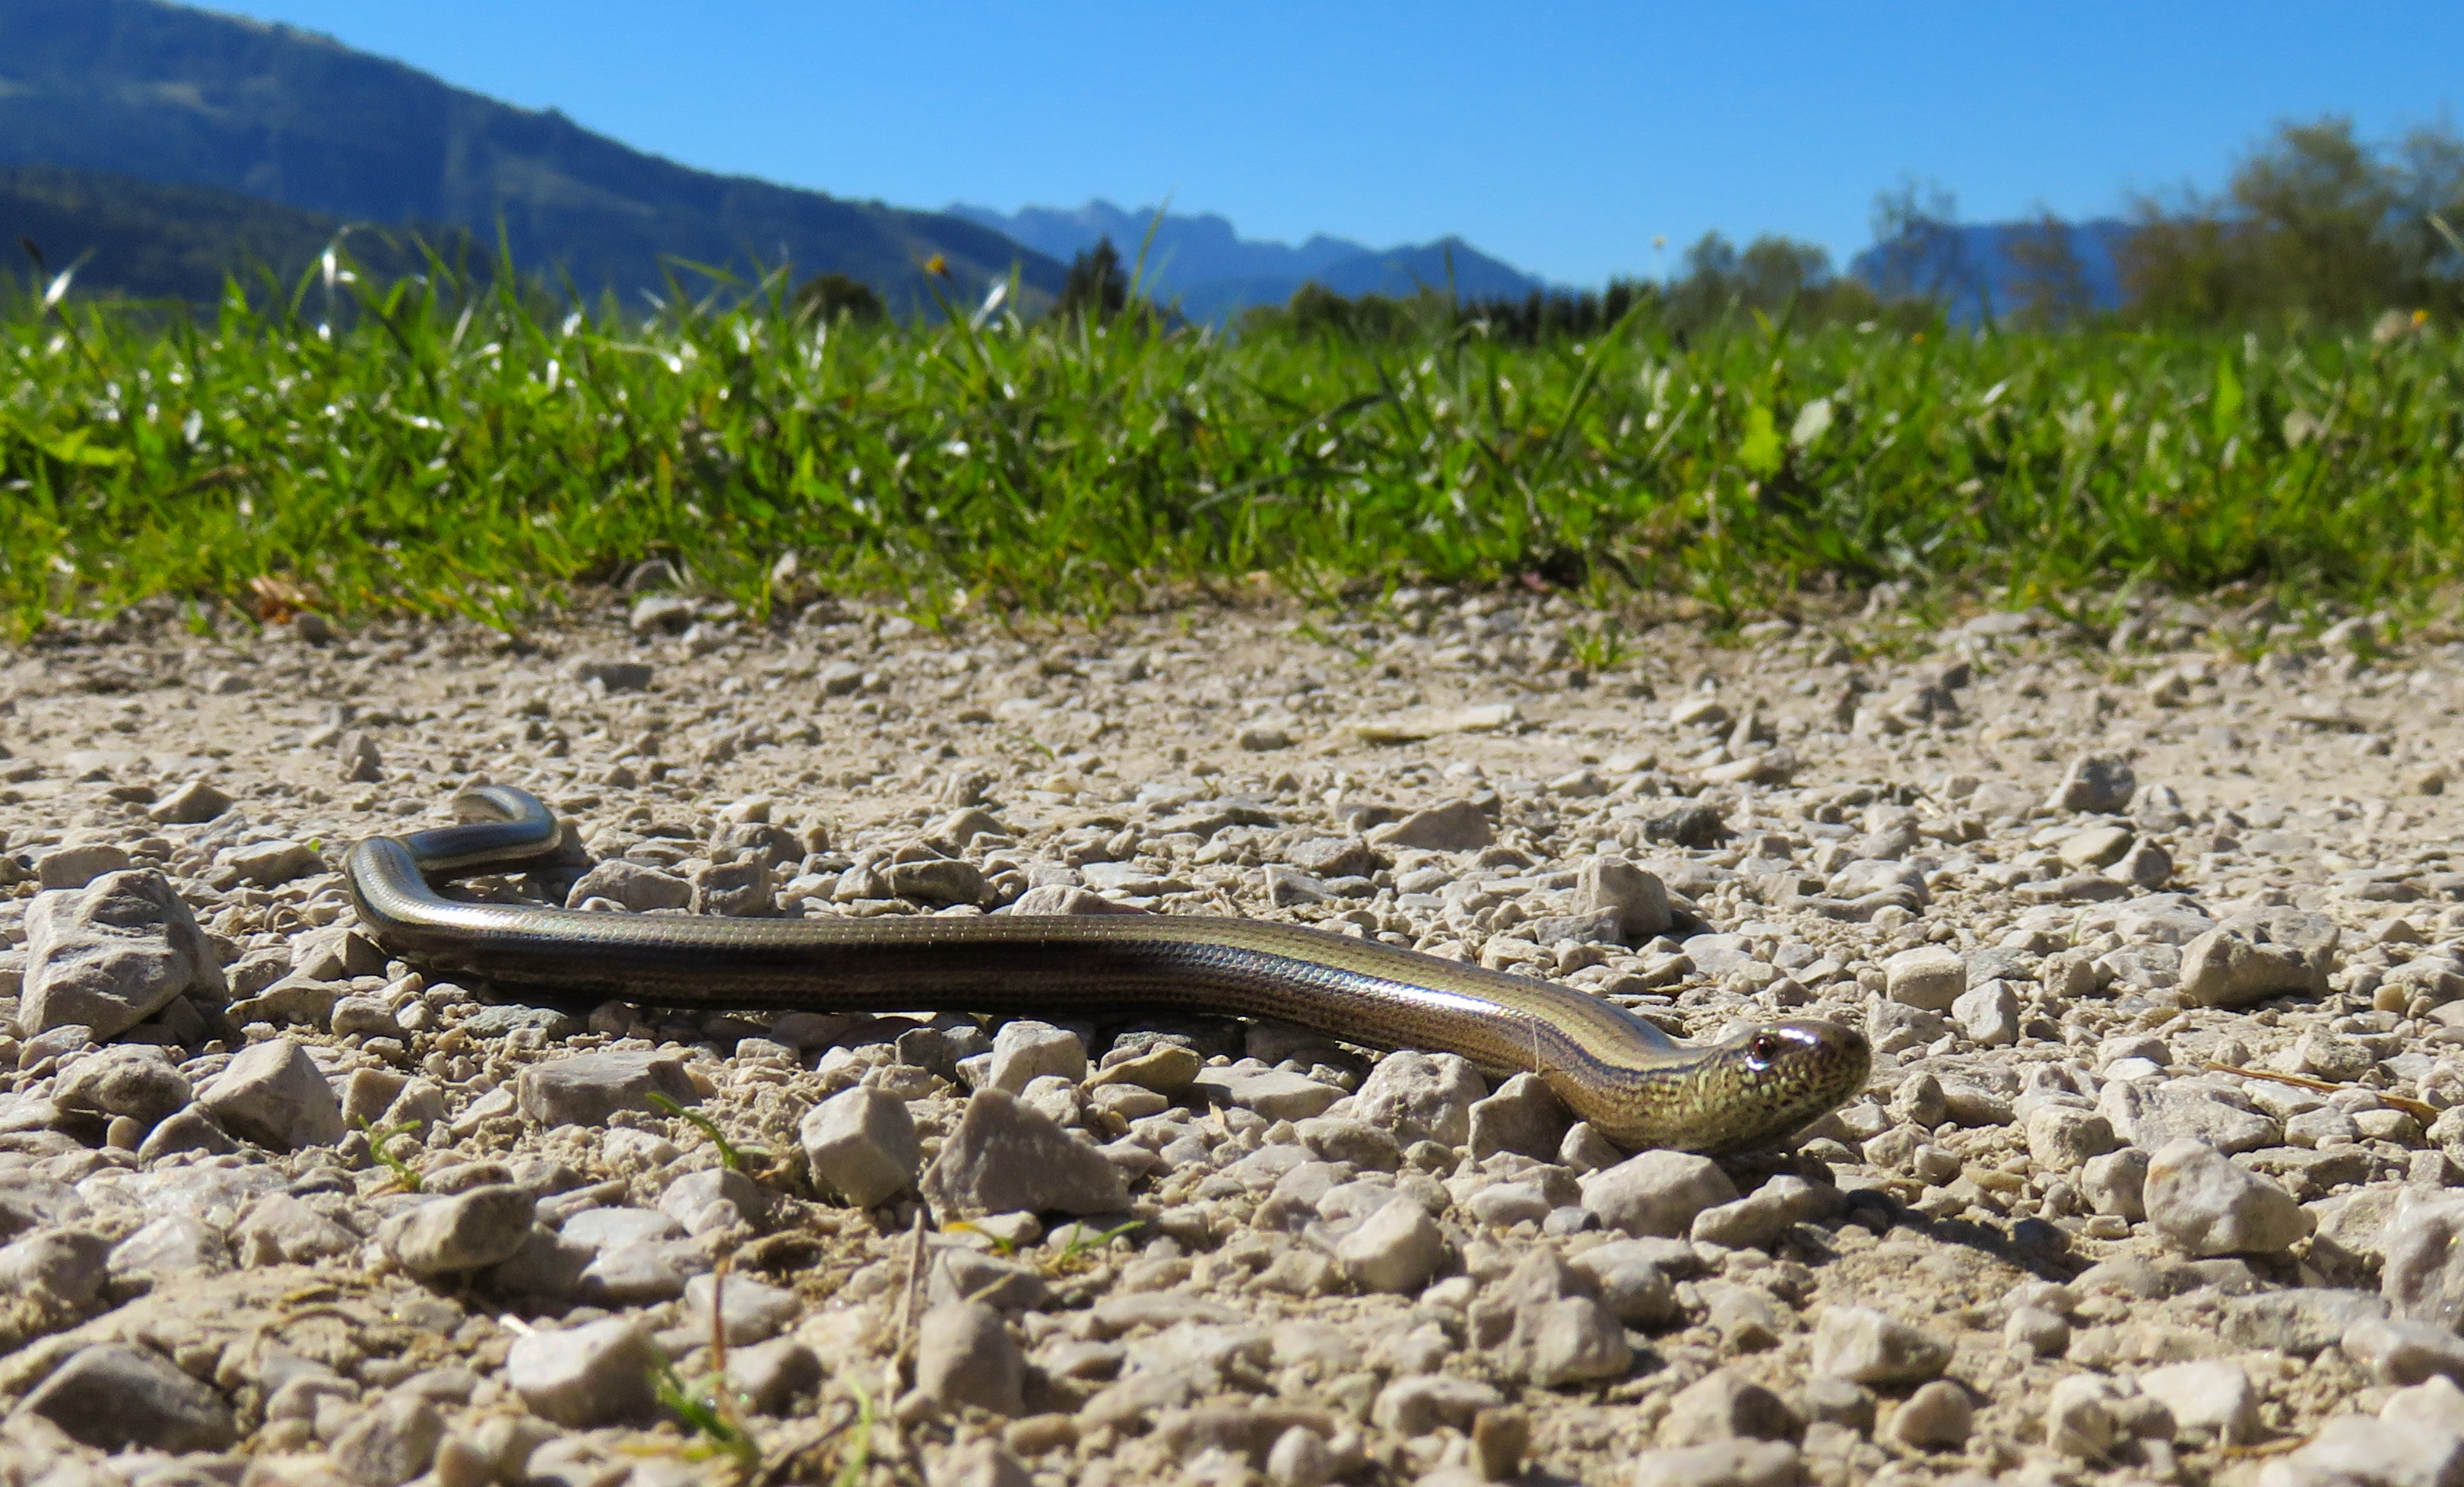 Snake in the Path, Animal, Jungle, Nature, Path, HQ Photo